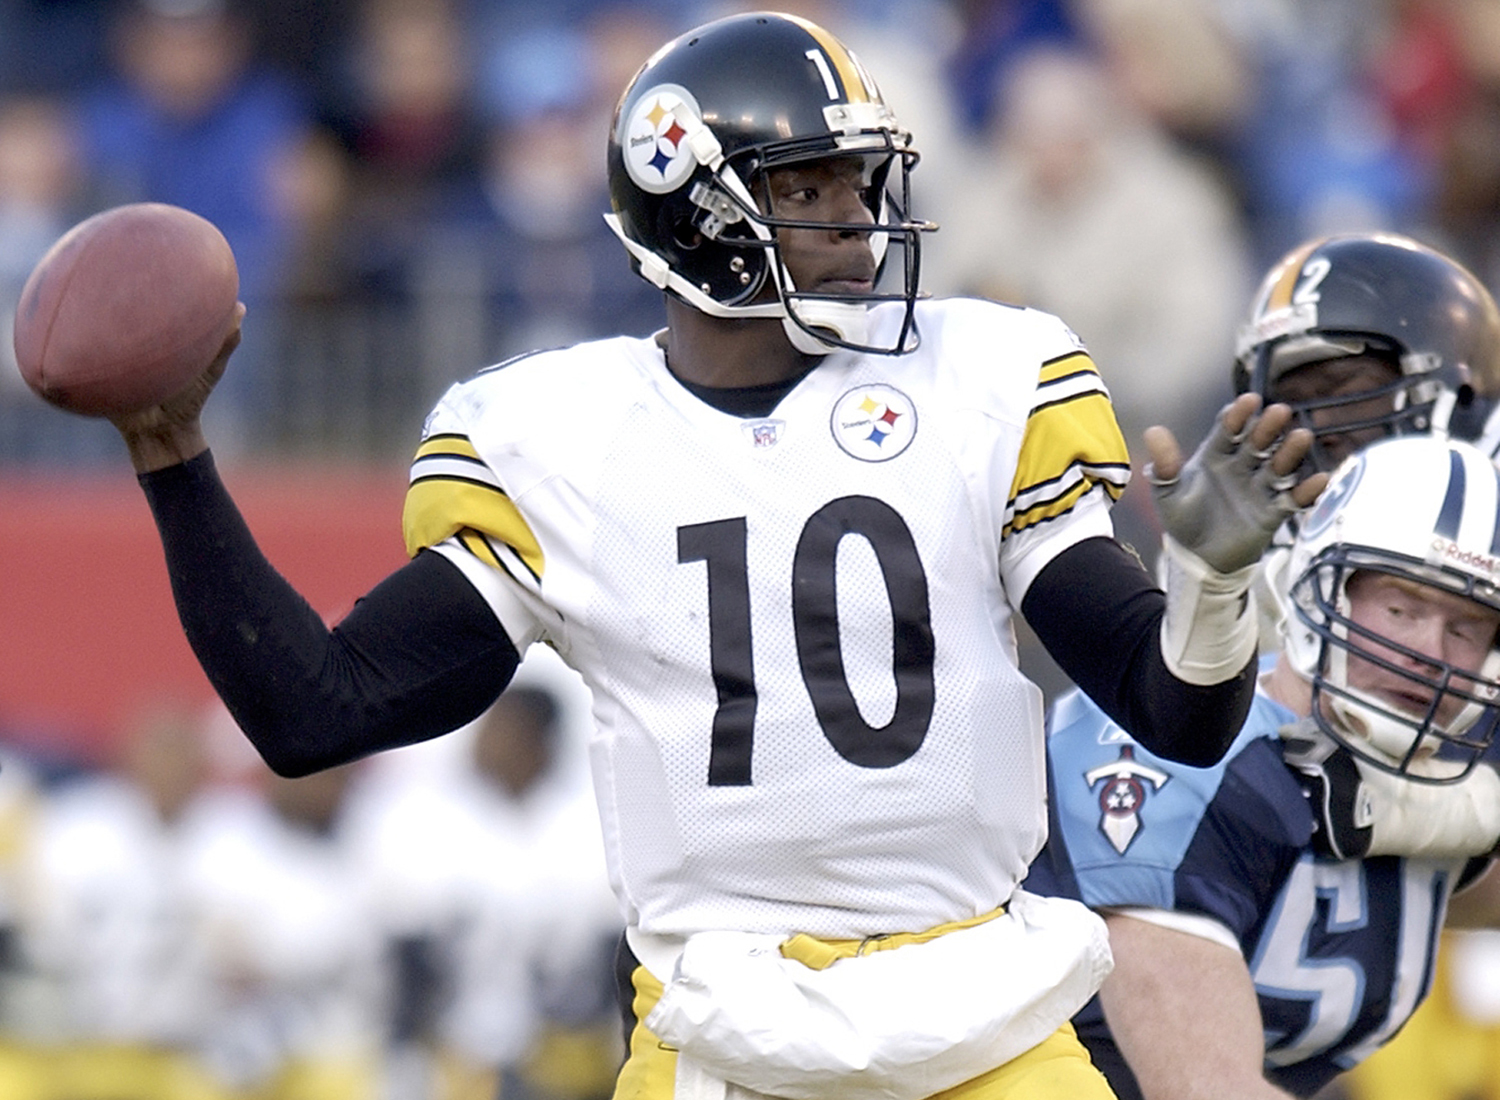 1995 NFL Draft, second round, Pittsburgh Steelers -- Stewart played eight seasons for the Steelers (1995-2002), one season for the Chicago Bears (2003) and two seasons for the Baltimore Ravens (2004-05). He is a one-time Pro Bowl selection, and while performing in a